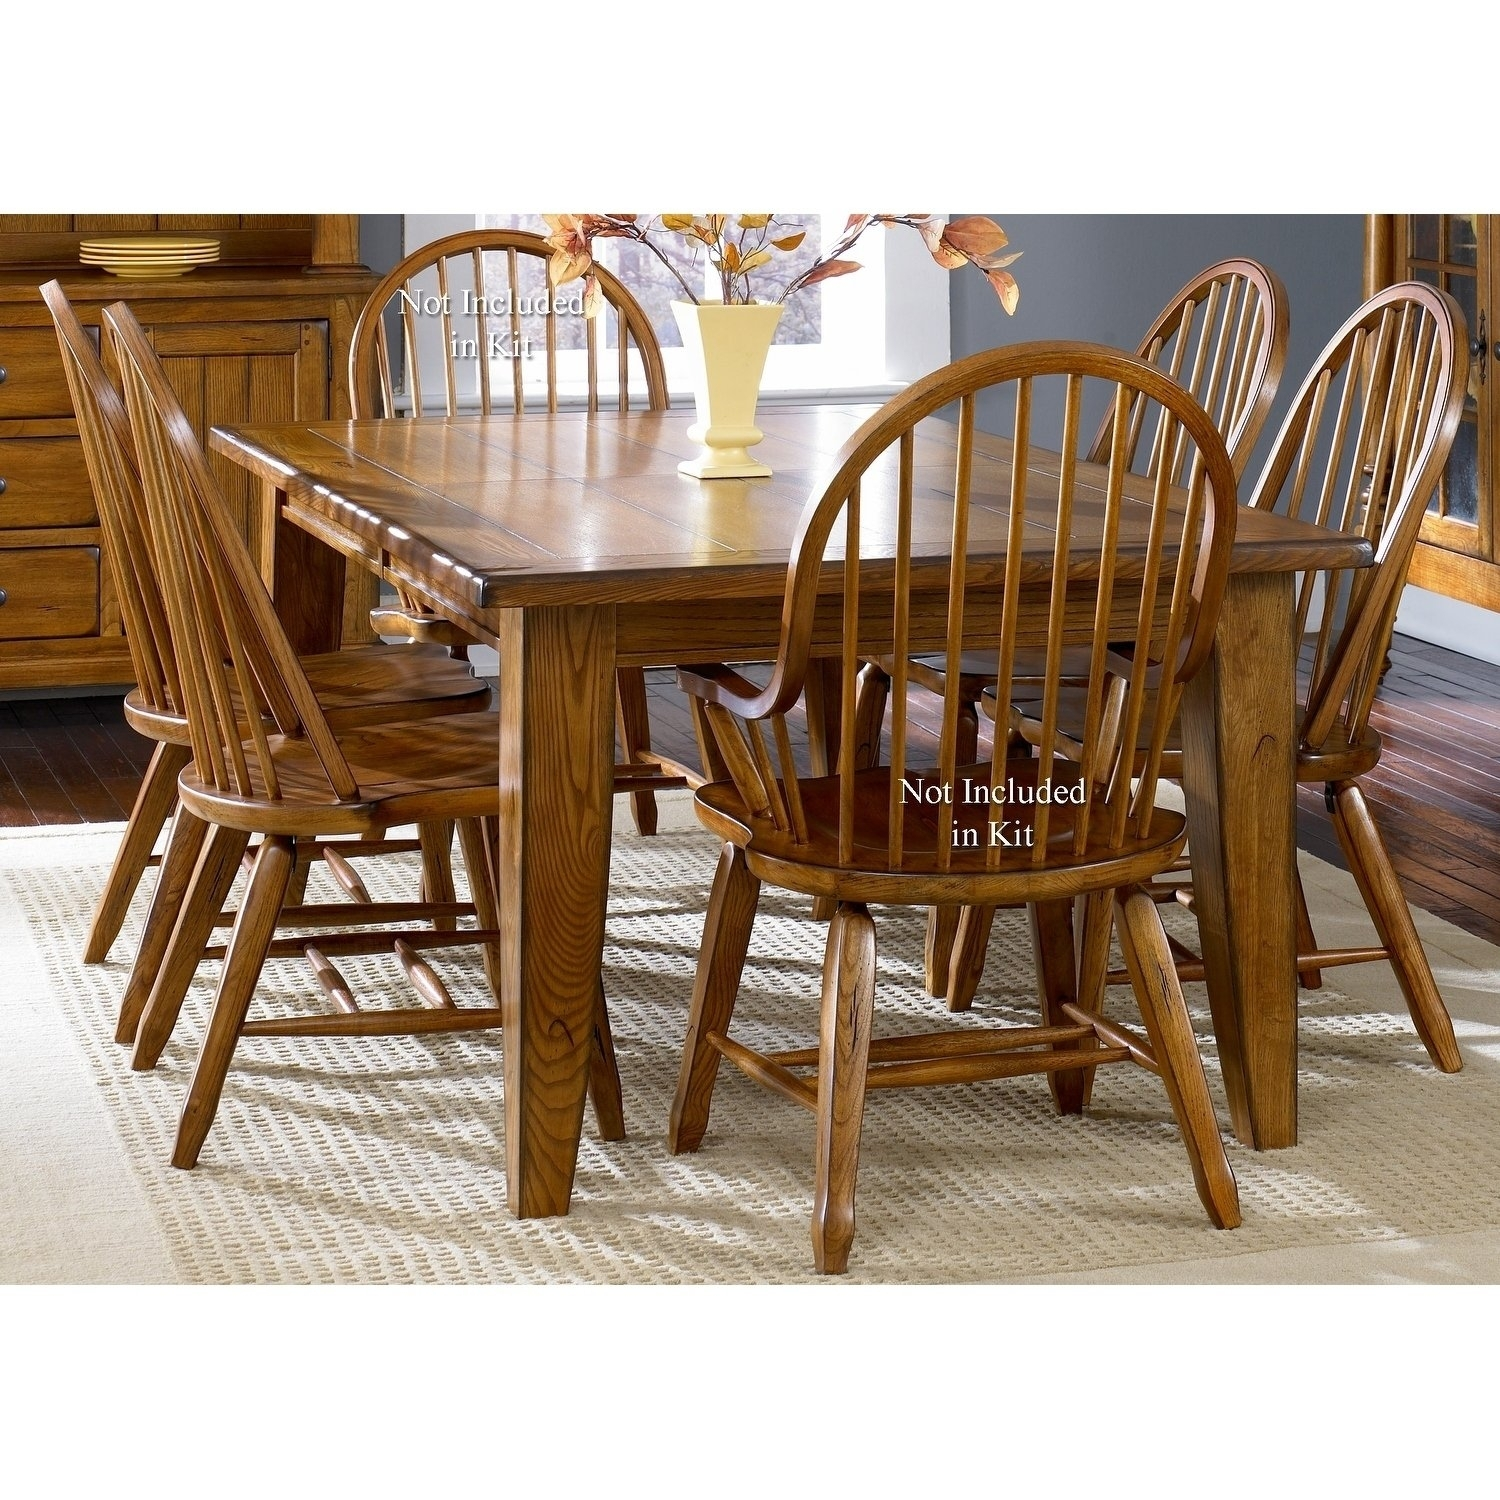 Shop Treasures Rustic Oak 5 Piece Bow Back 44X108 Rectangular With Regard To 2018 Craftsman 7 Piece Rectangle Extension Dining Sets With Arm & Side Chairs (Image 17 of 20)